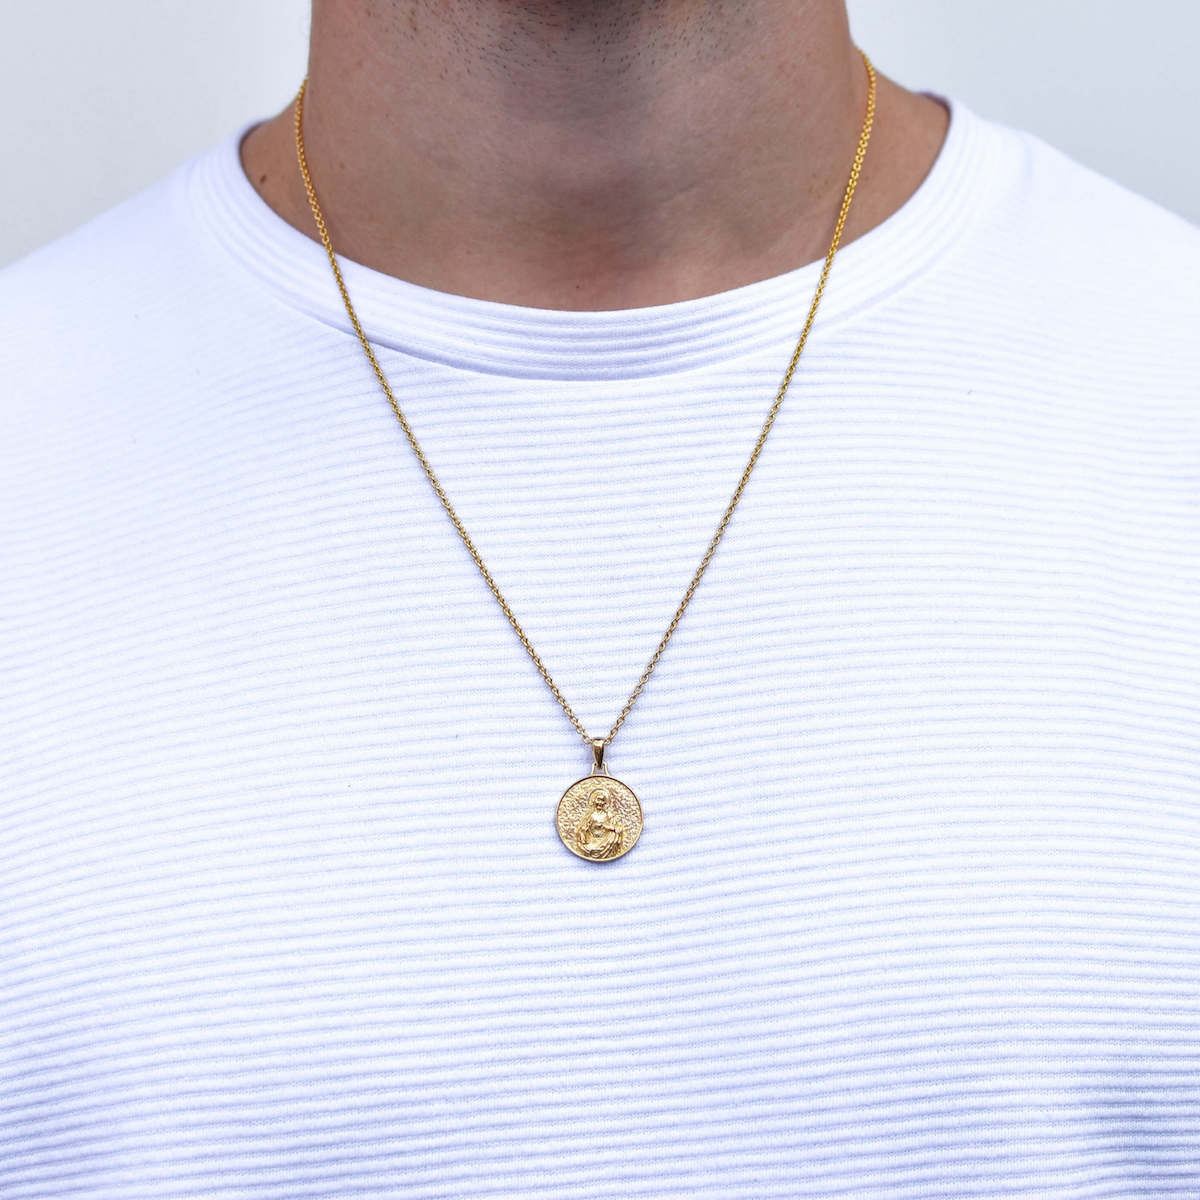 Jesus Piece Necklace in Gold for Men